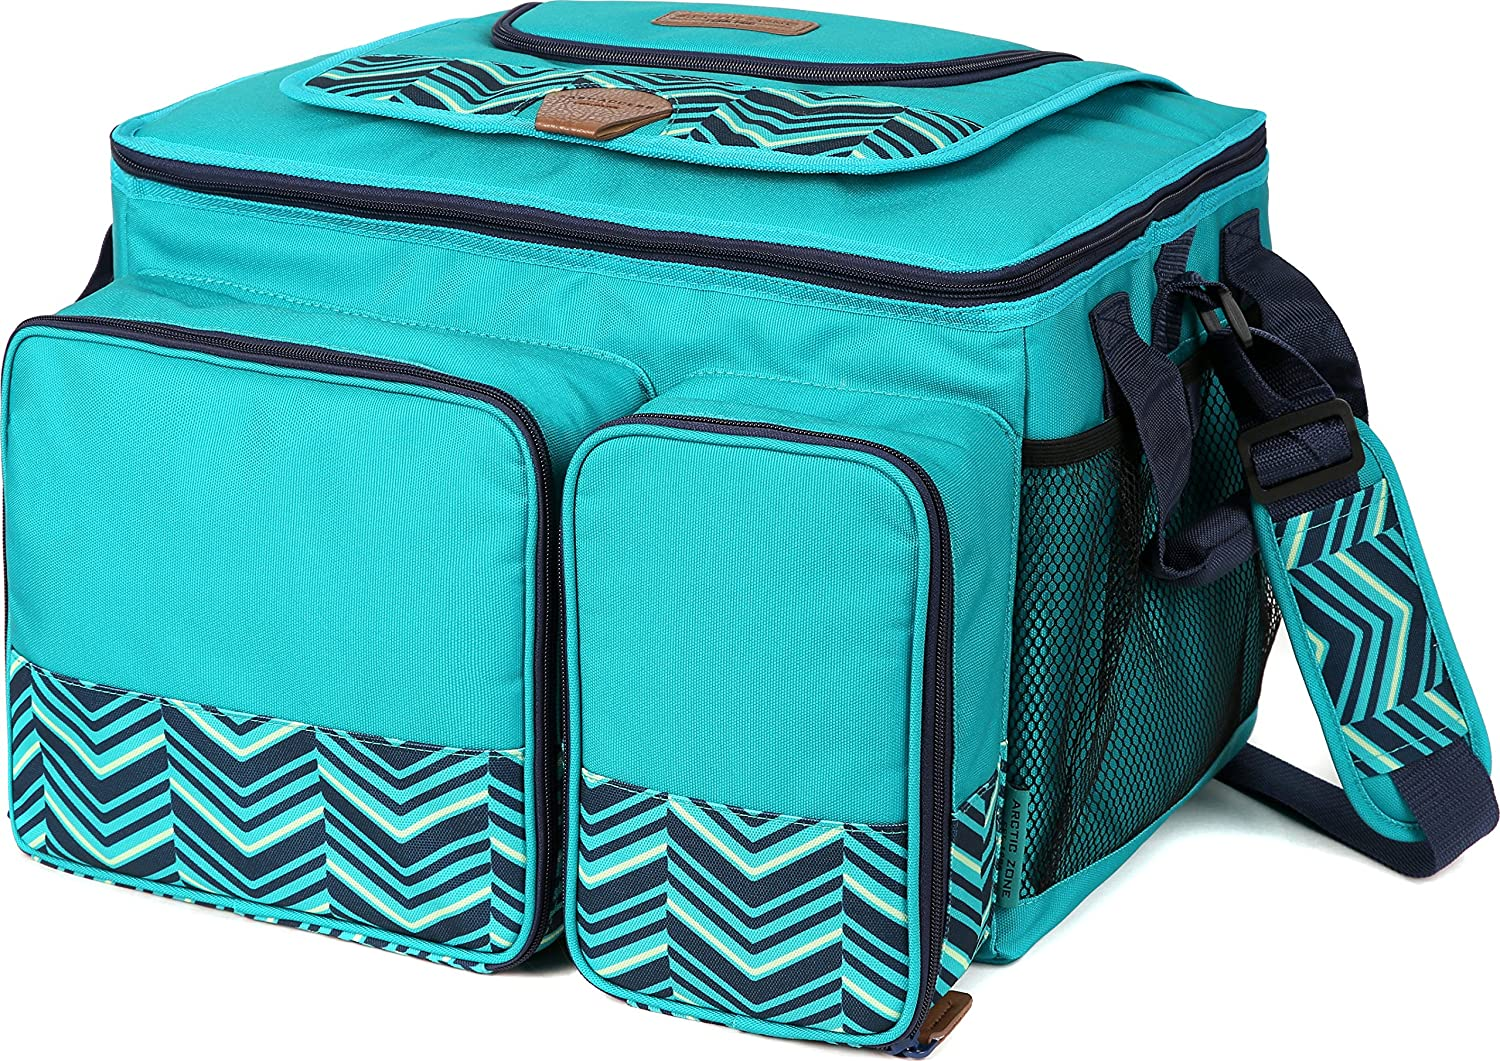 Arctic Zone Hot/Cold Insulated Collapsible Picnic Cooler, Teal